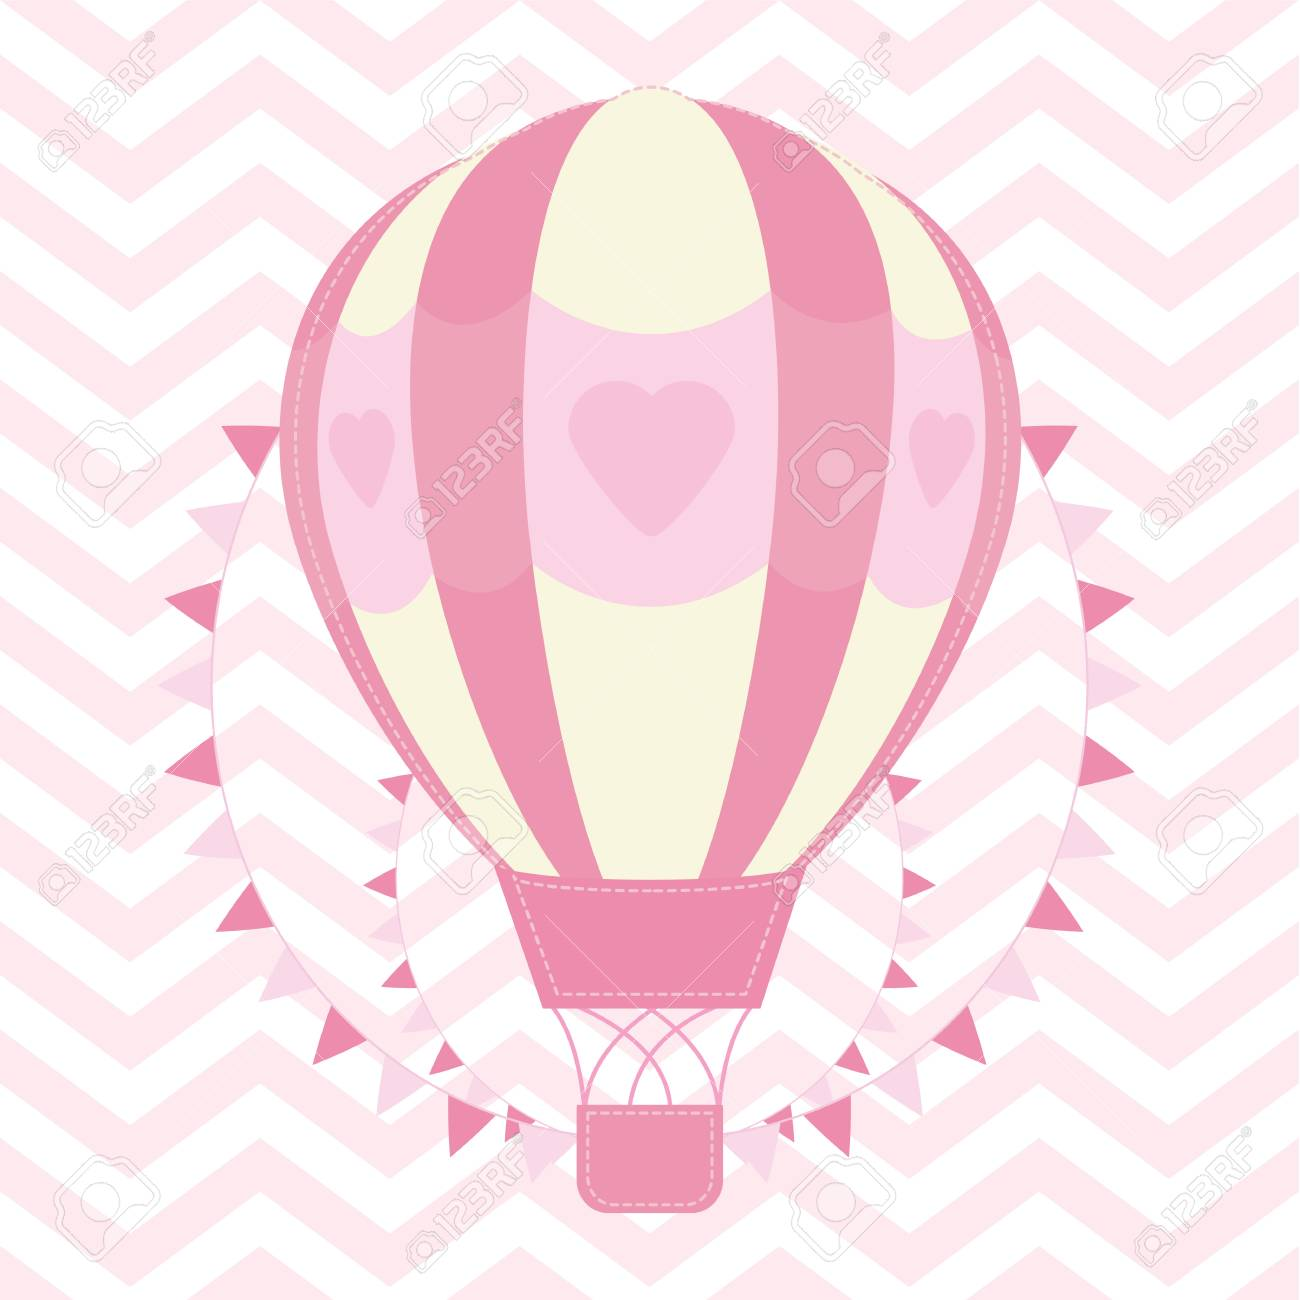 Baby Shower Illustration With Cute Pink Hot Air Balloon On Chevron